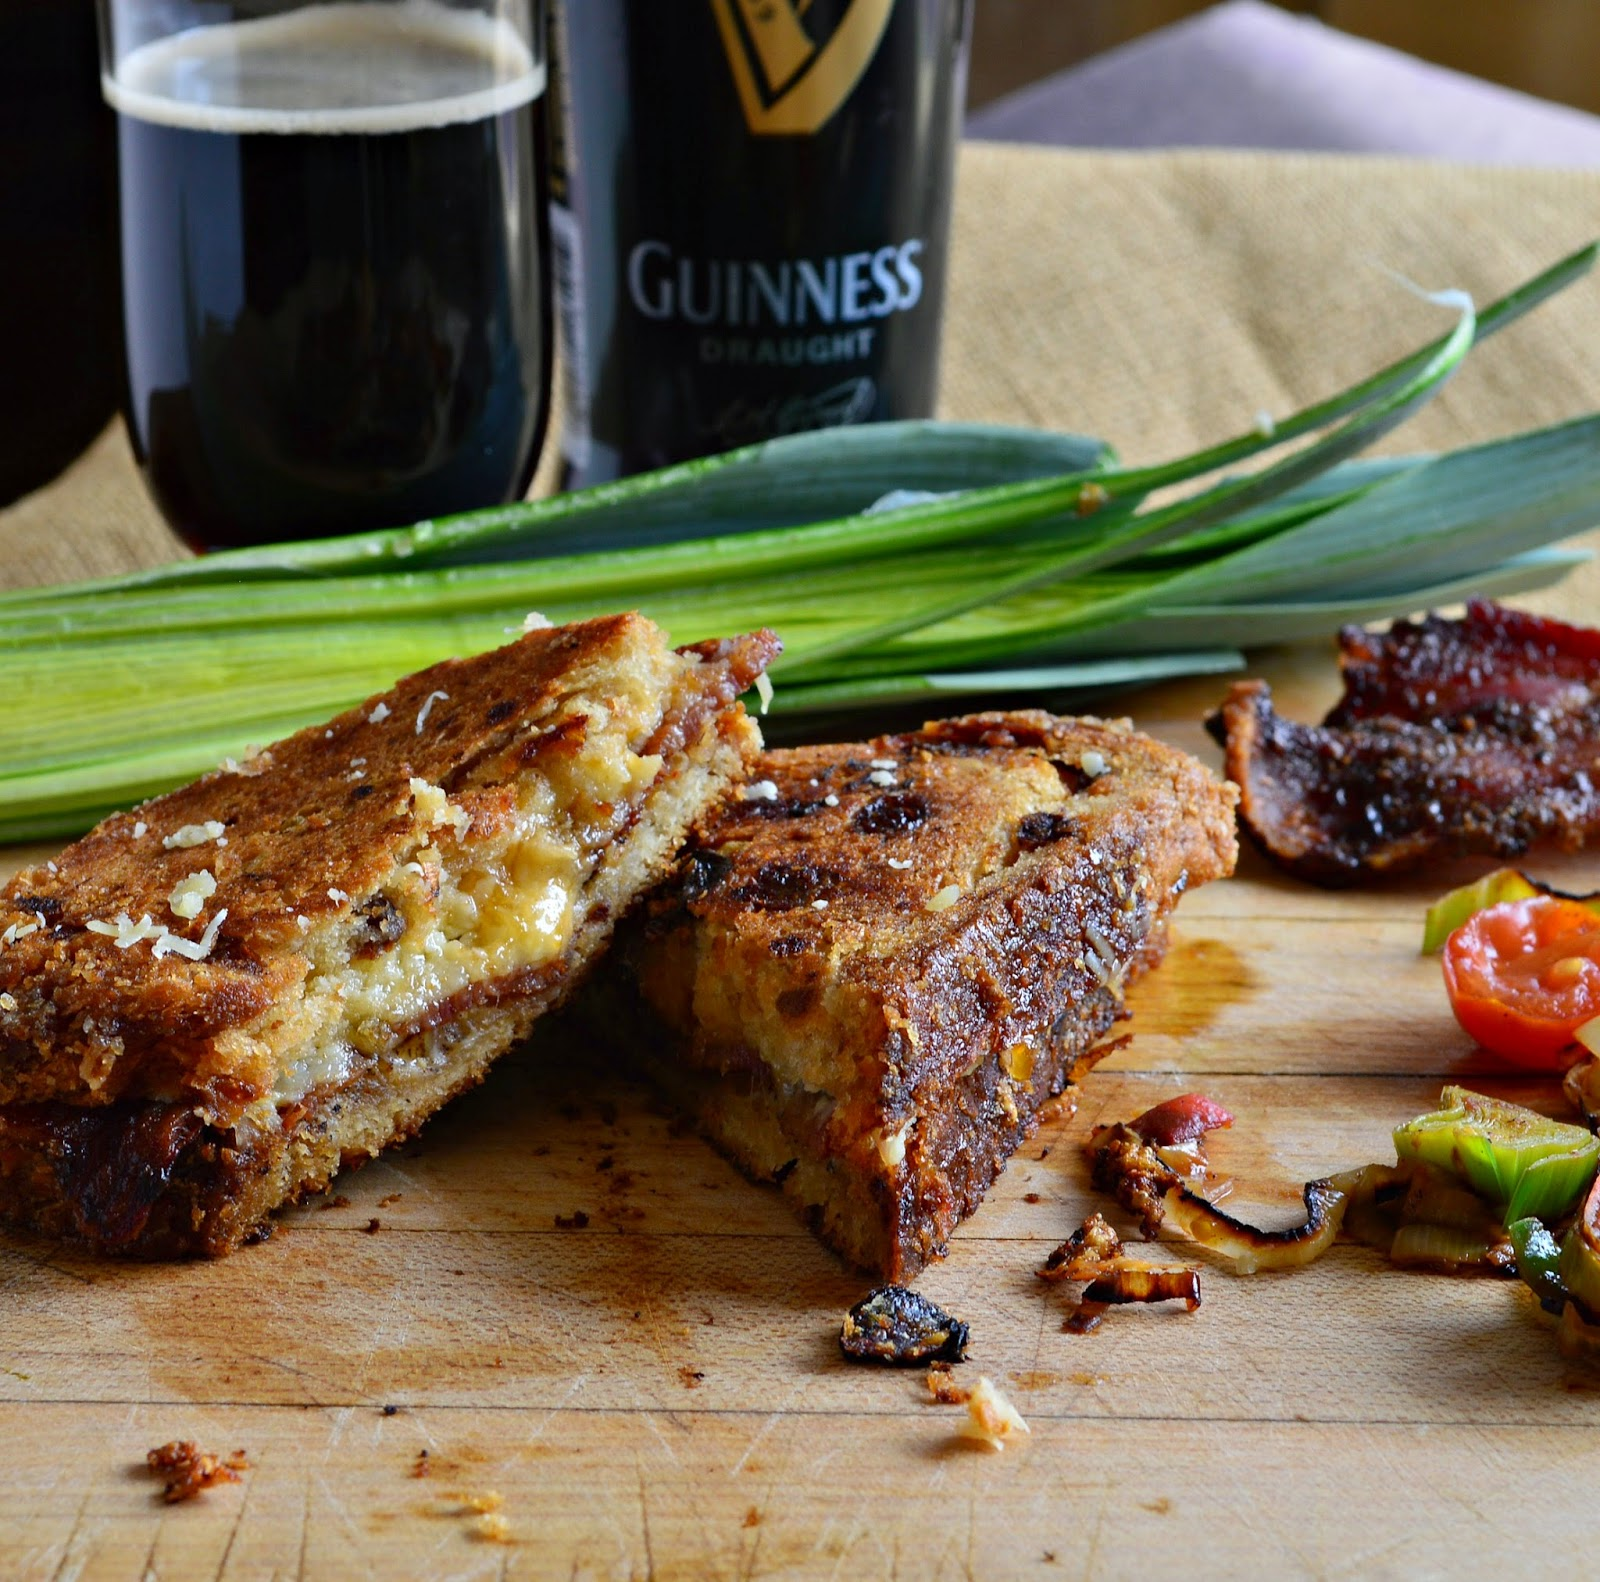 An Irish grilled cheese with Guinness and apricot jam and bacon and Irish cheese and oh my...this is good! Don't forget the Irish soda bread! #Irishrecipes #St.PaddiesDay #grilledcheese www.thisishowicook.com